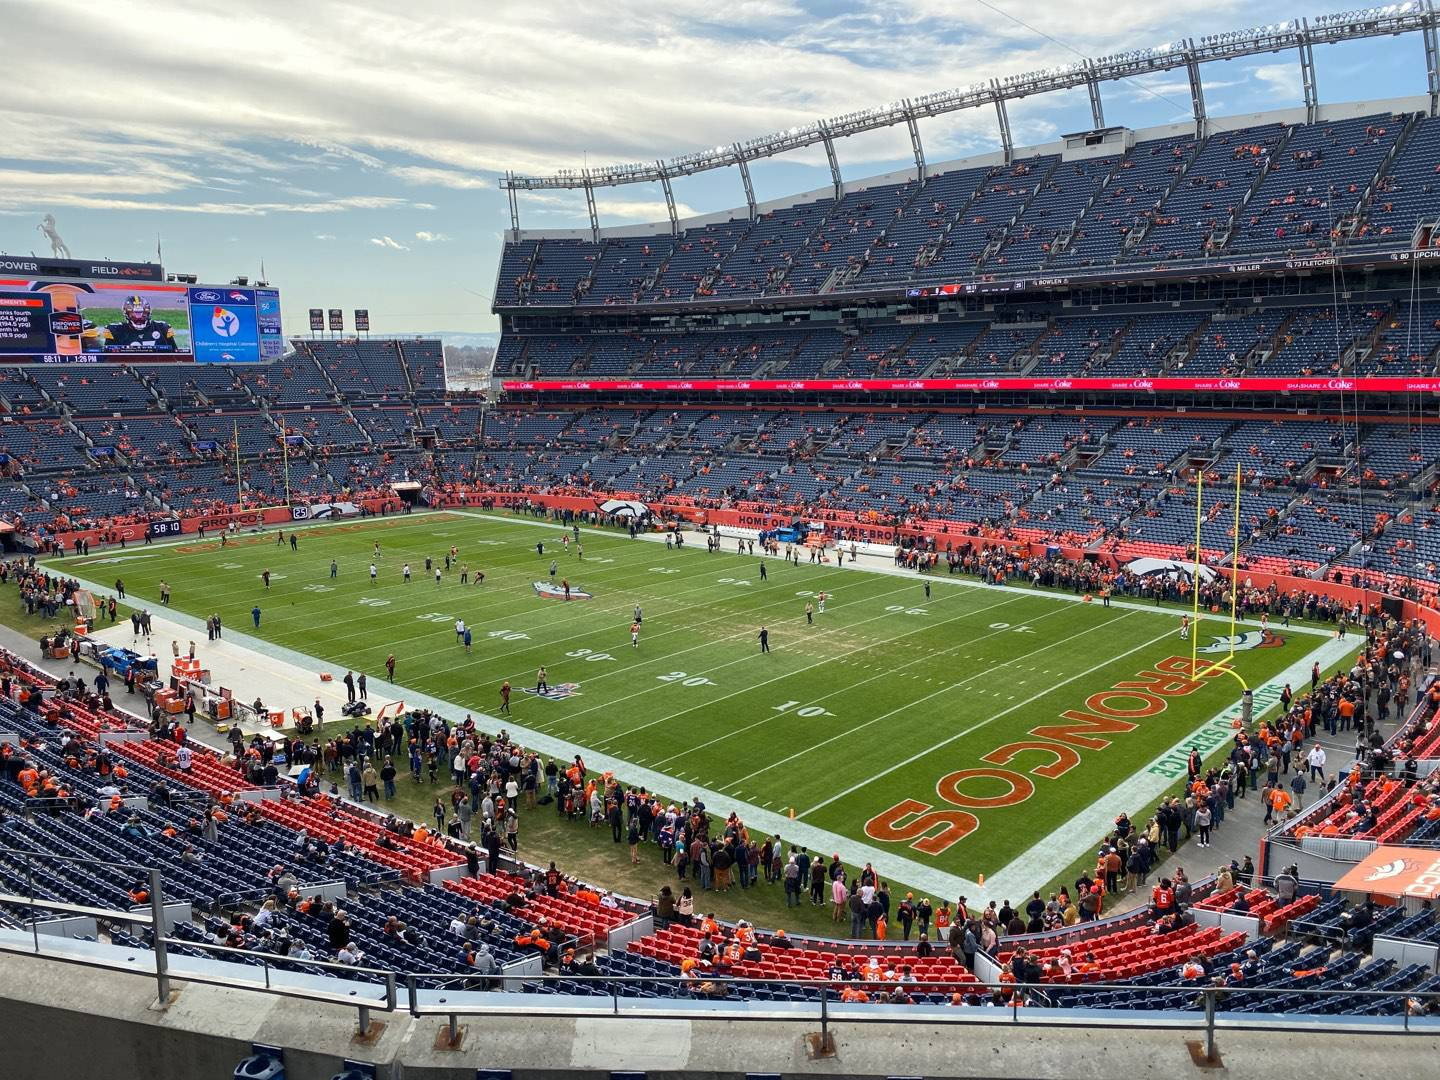 Empower Field at Mile High Stadium Section 329 Row 5 Seat 9